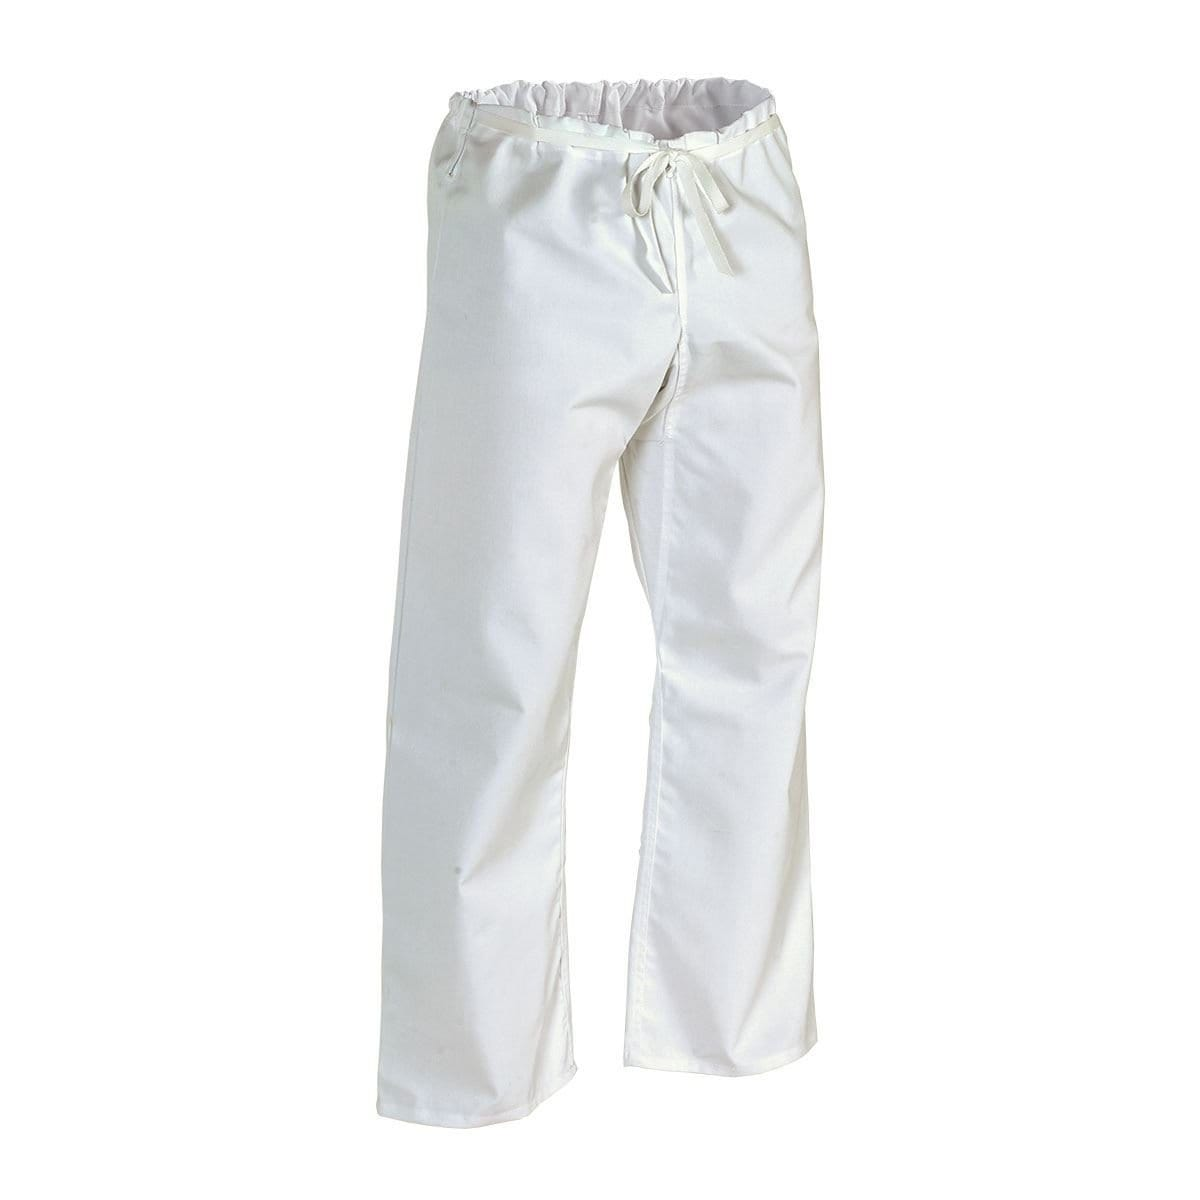 Middleweight Traditional Drawstring Pant White